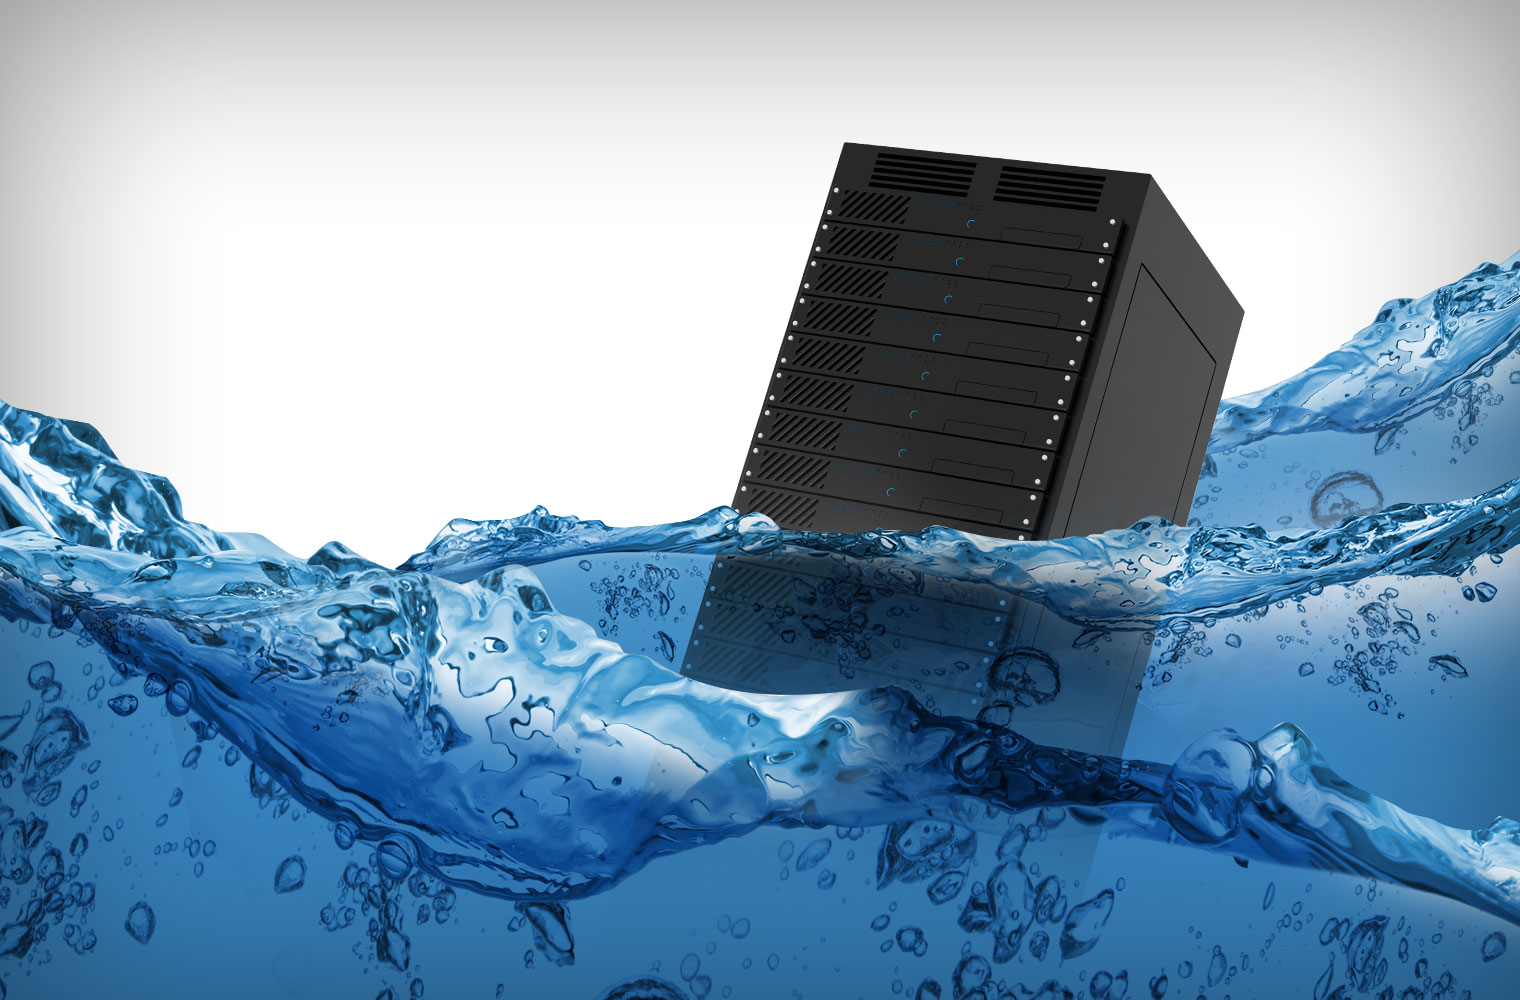 Flood of New Advisories Expose Massive Gaps in Firmware Security